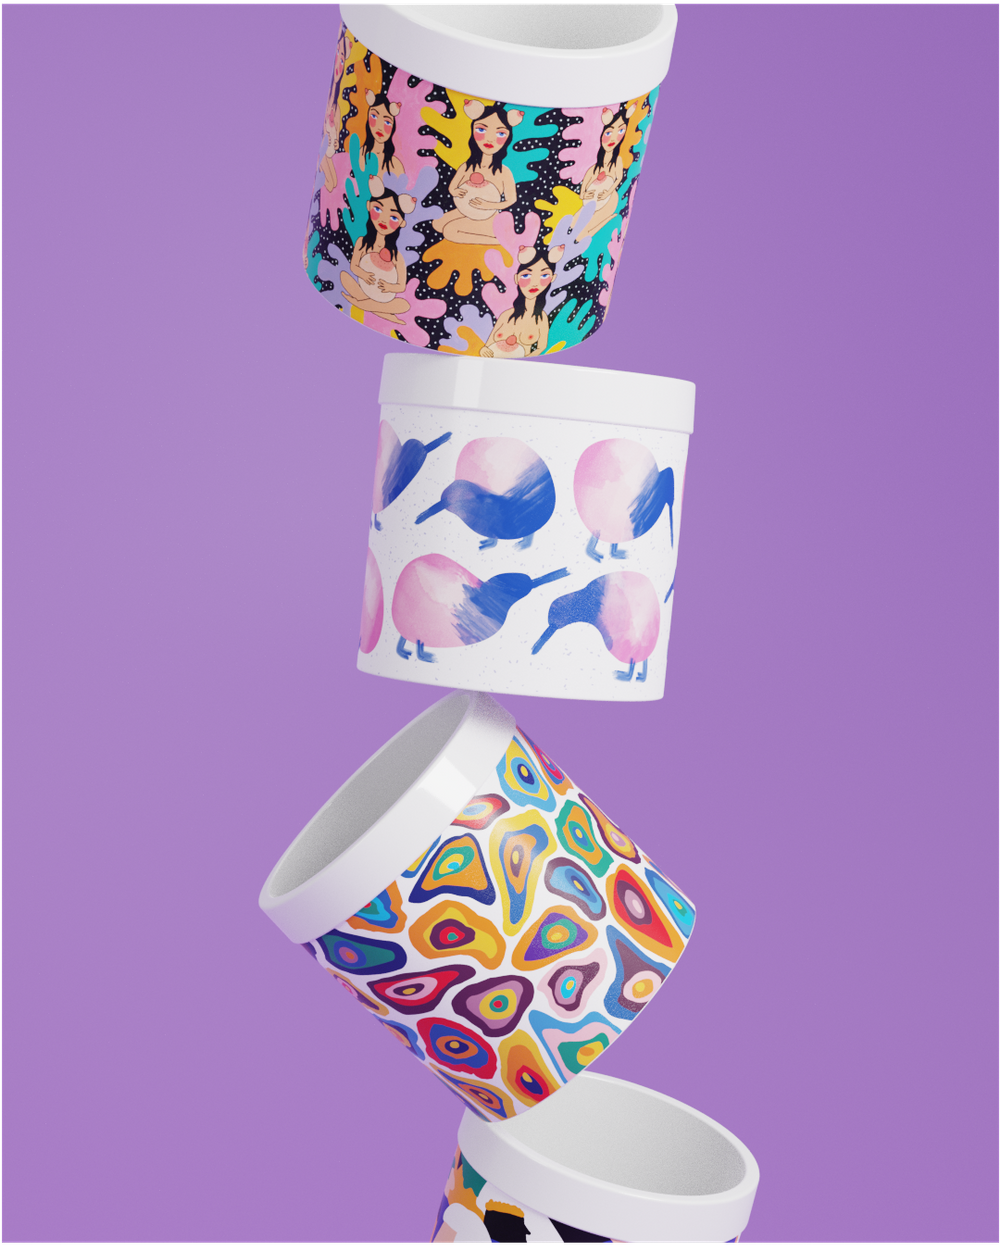 flowerpots with graphic illustrations in bold colors and illustrations by Swedish lifestyle brand Poppy Poppy.